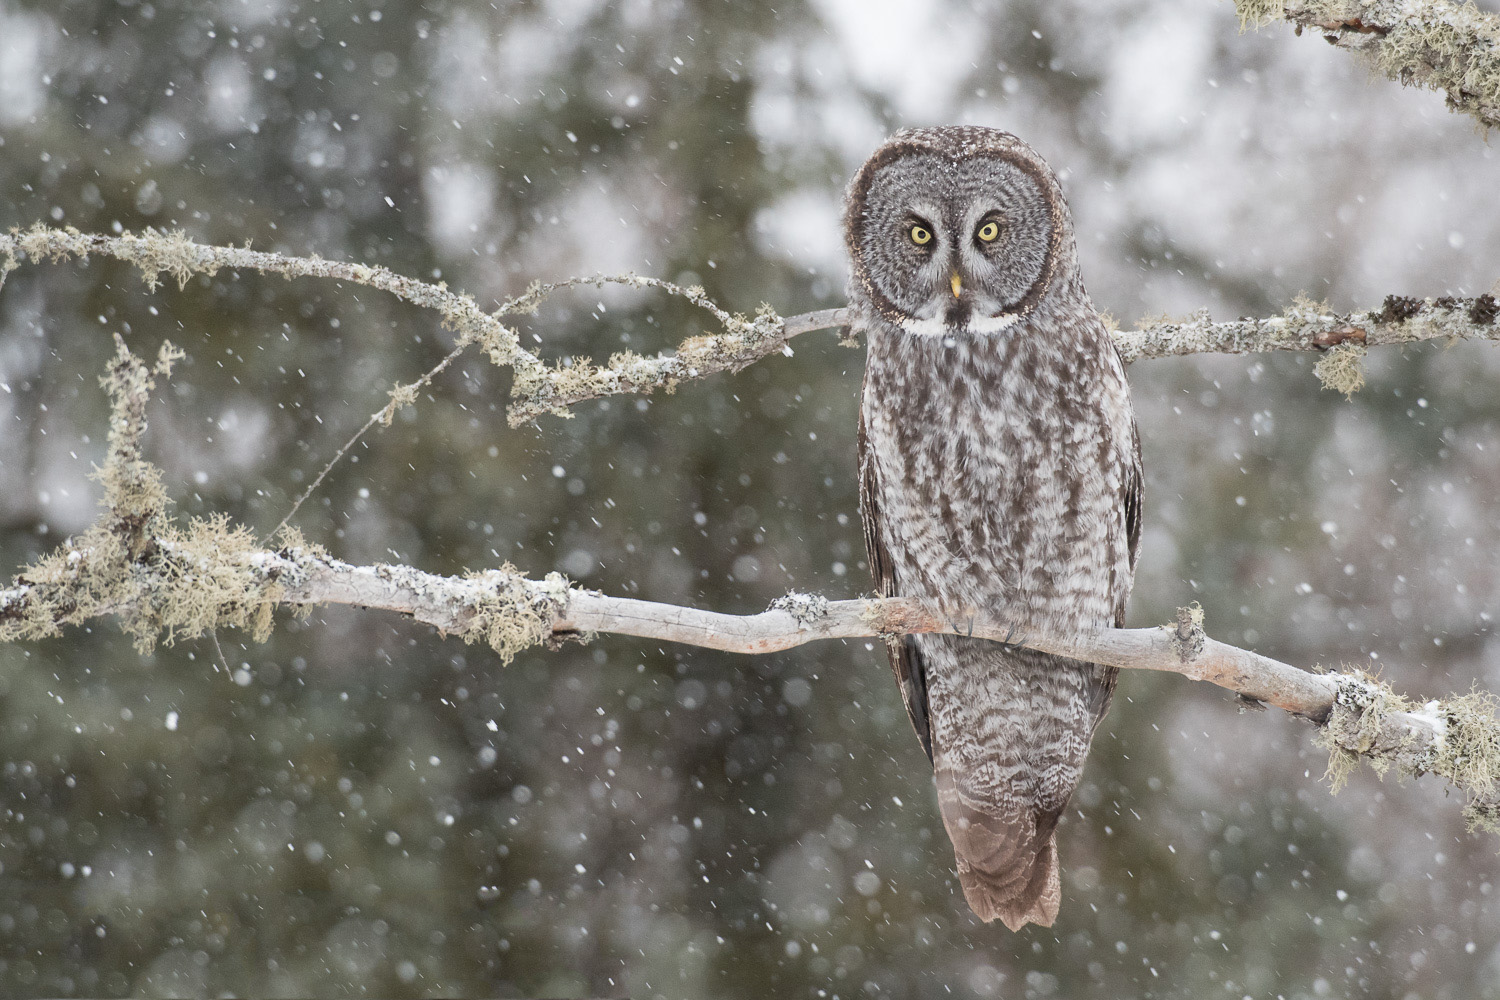 Great Gray Owl - Sax-Zim Bog, MN    Nikon D810 + Nikon 200-400mm f/4 VR